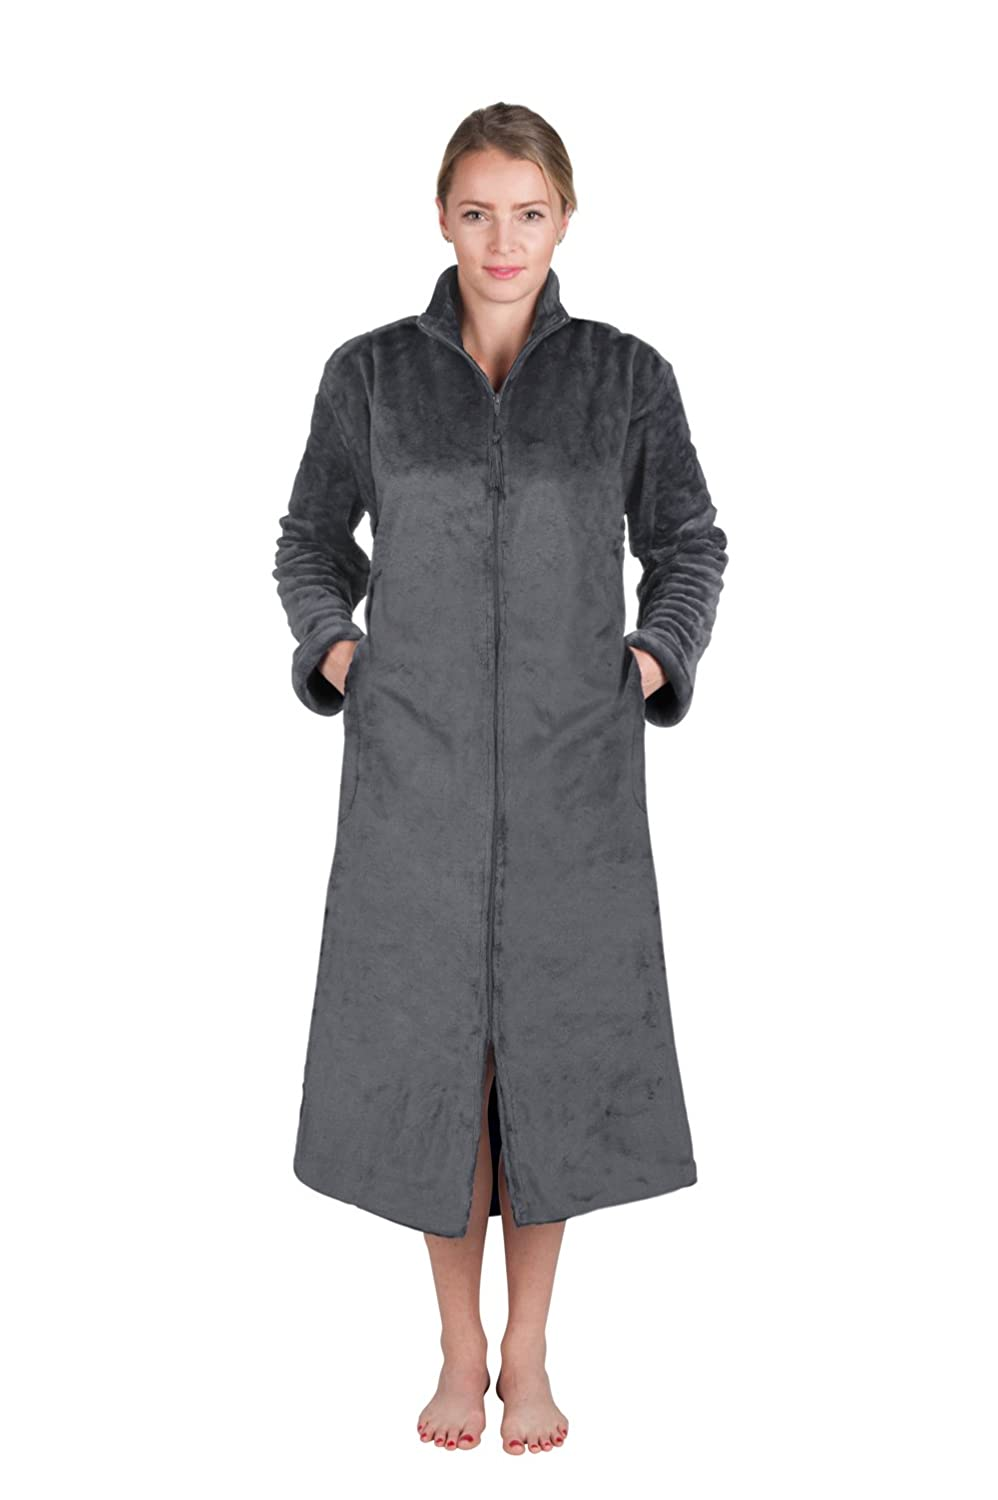 Super Plush Front Zipper Scroll Texture Robe Zipper Bathrobe (XLarge, Shades of Gray) 7032-XL-Gray